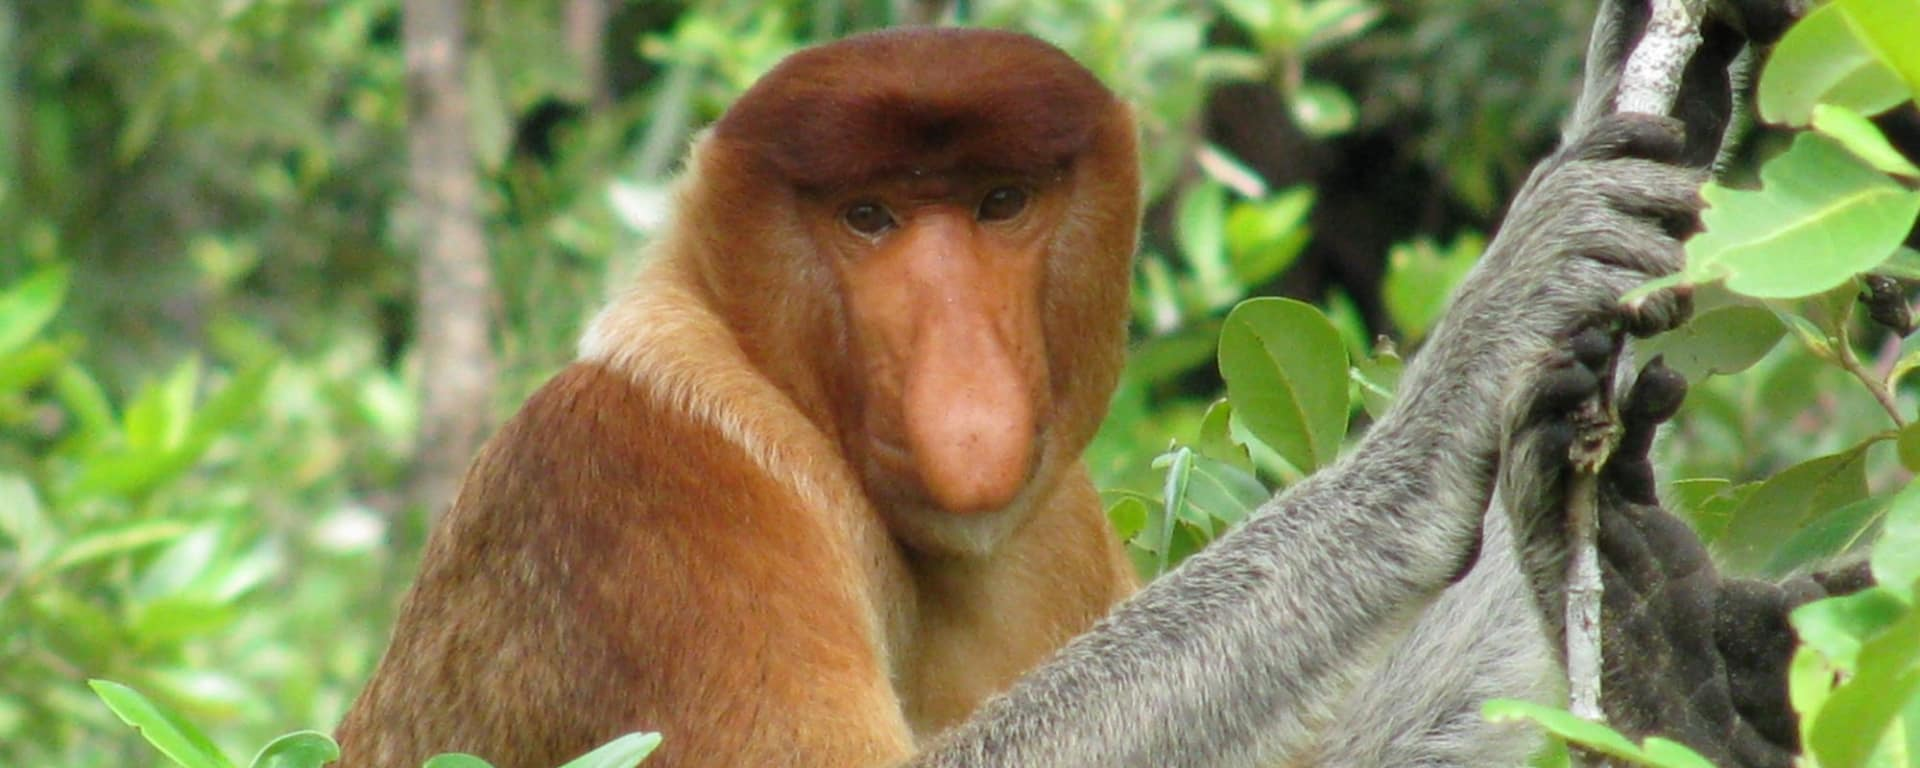 Parc national de Bako à Kuching: Proboscis Monkey